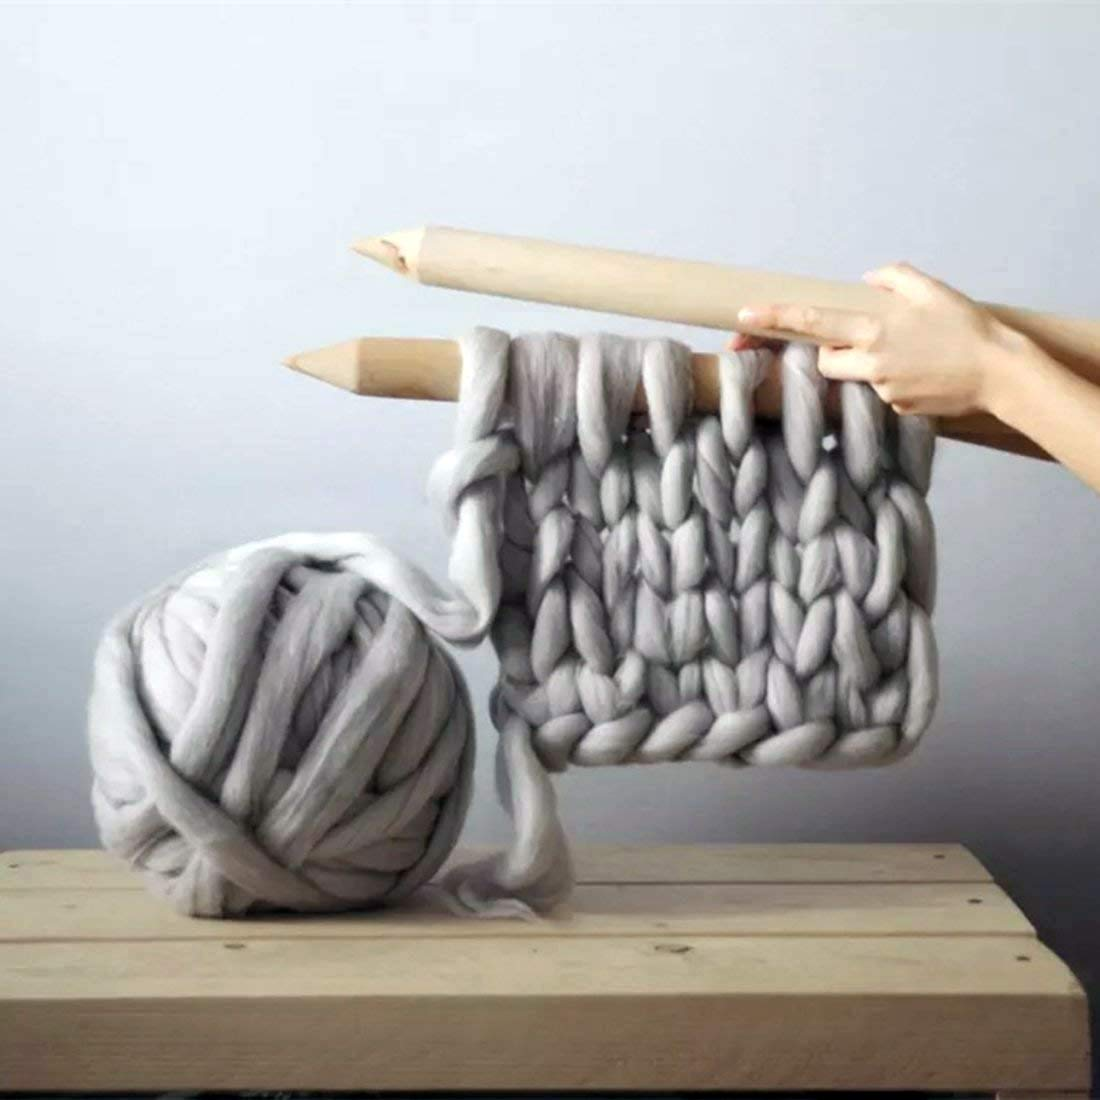 clootess Bulky Chunky Yarn Big Roving Wool for Hand Made Knitted DIY Sofa Bed Throw Blankets Light Grey 8 lbs = 3.6 kg by clootess (Image #4)